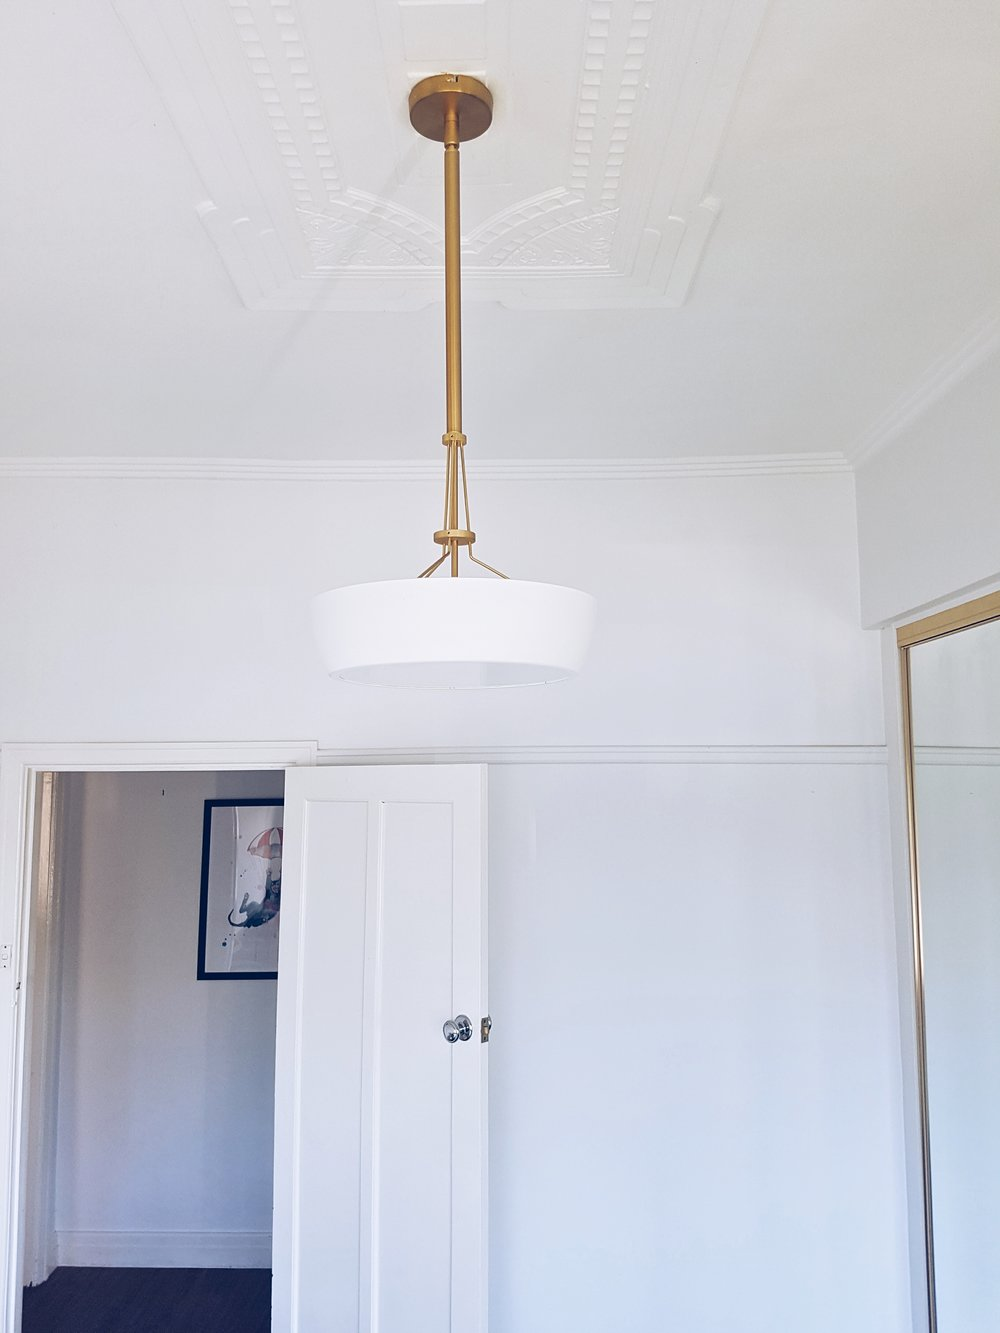 """""""I replaced the pendant light with a brass art deco pendant that took months to track down,creating a sense of nostalgia."""""""